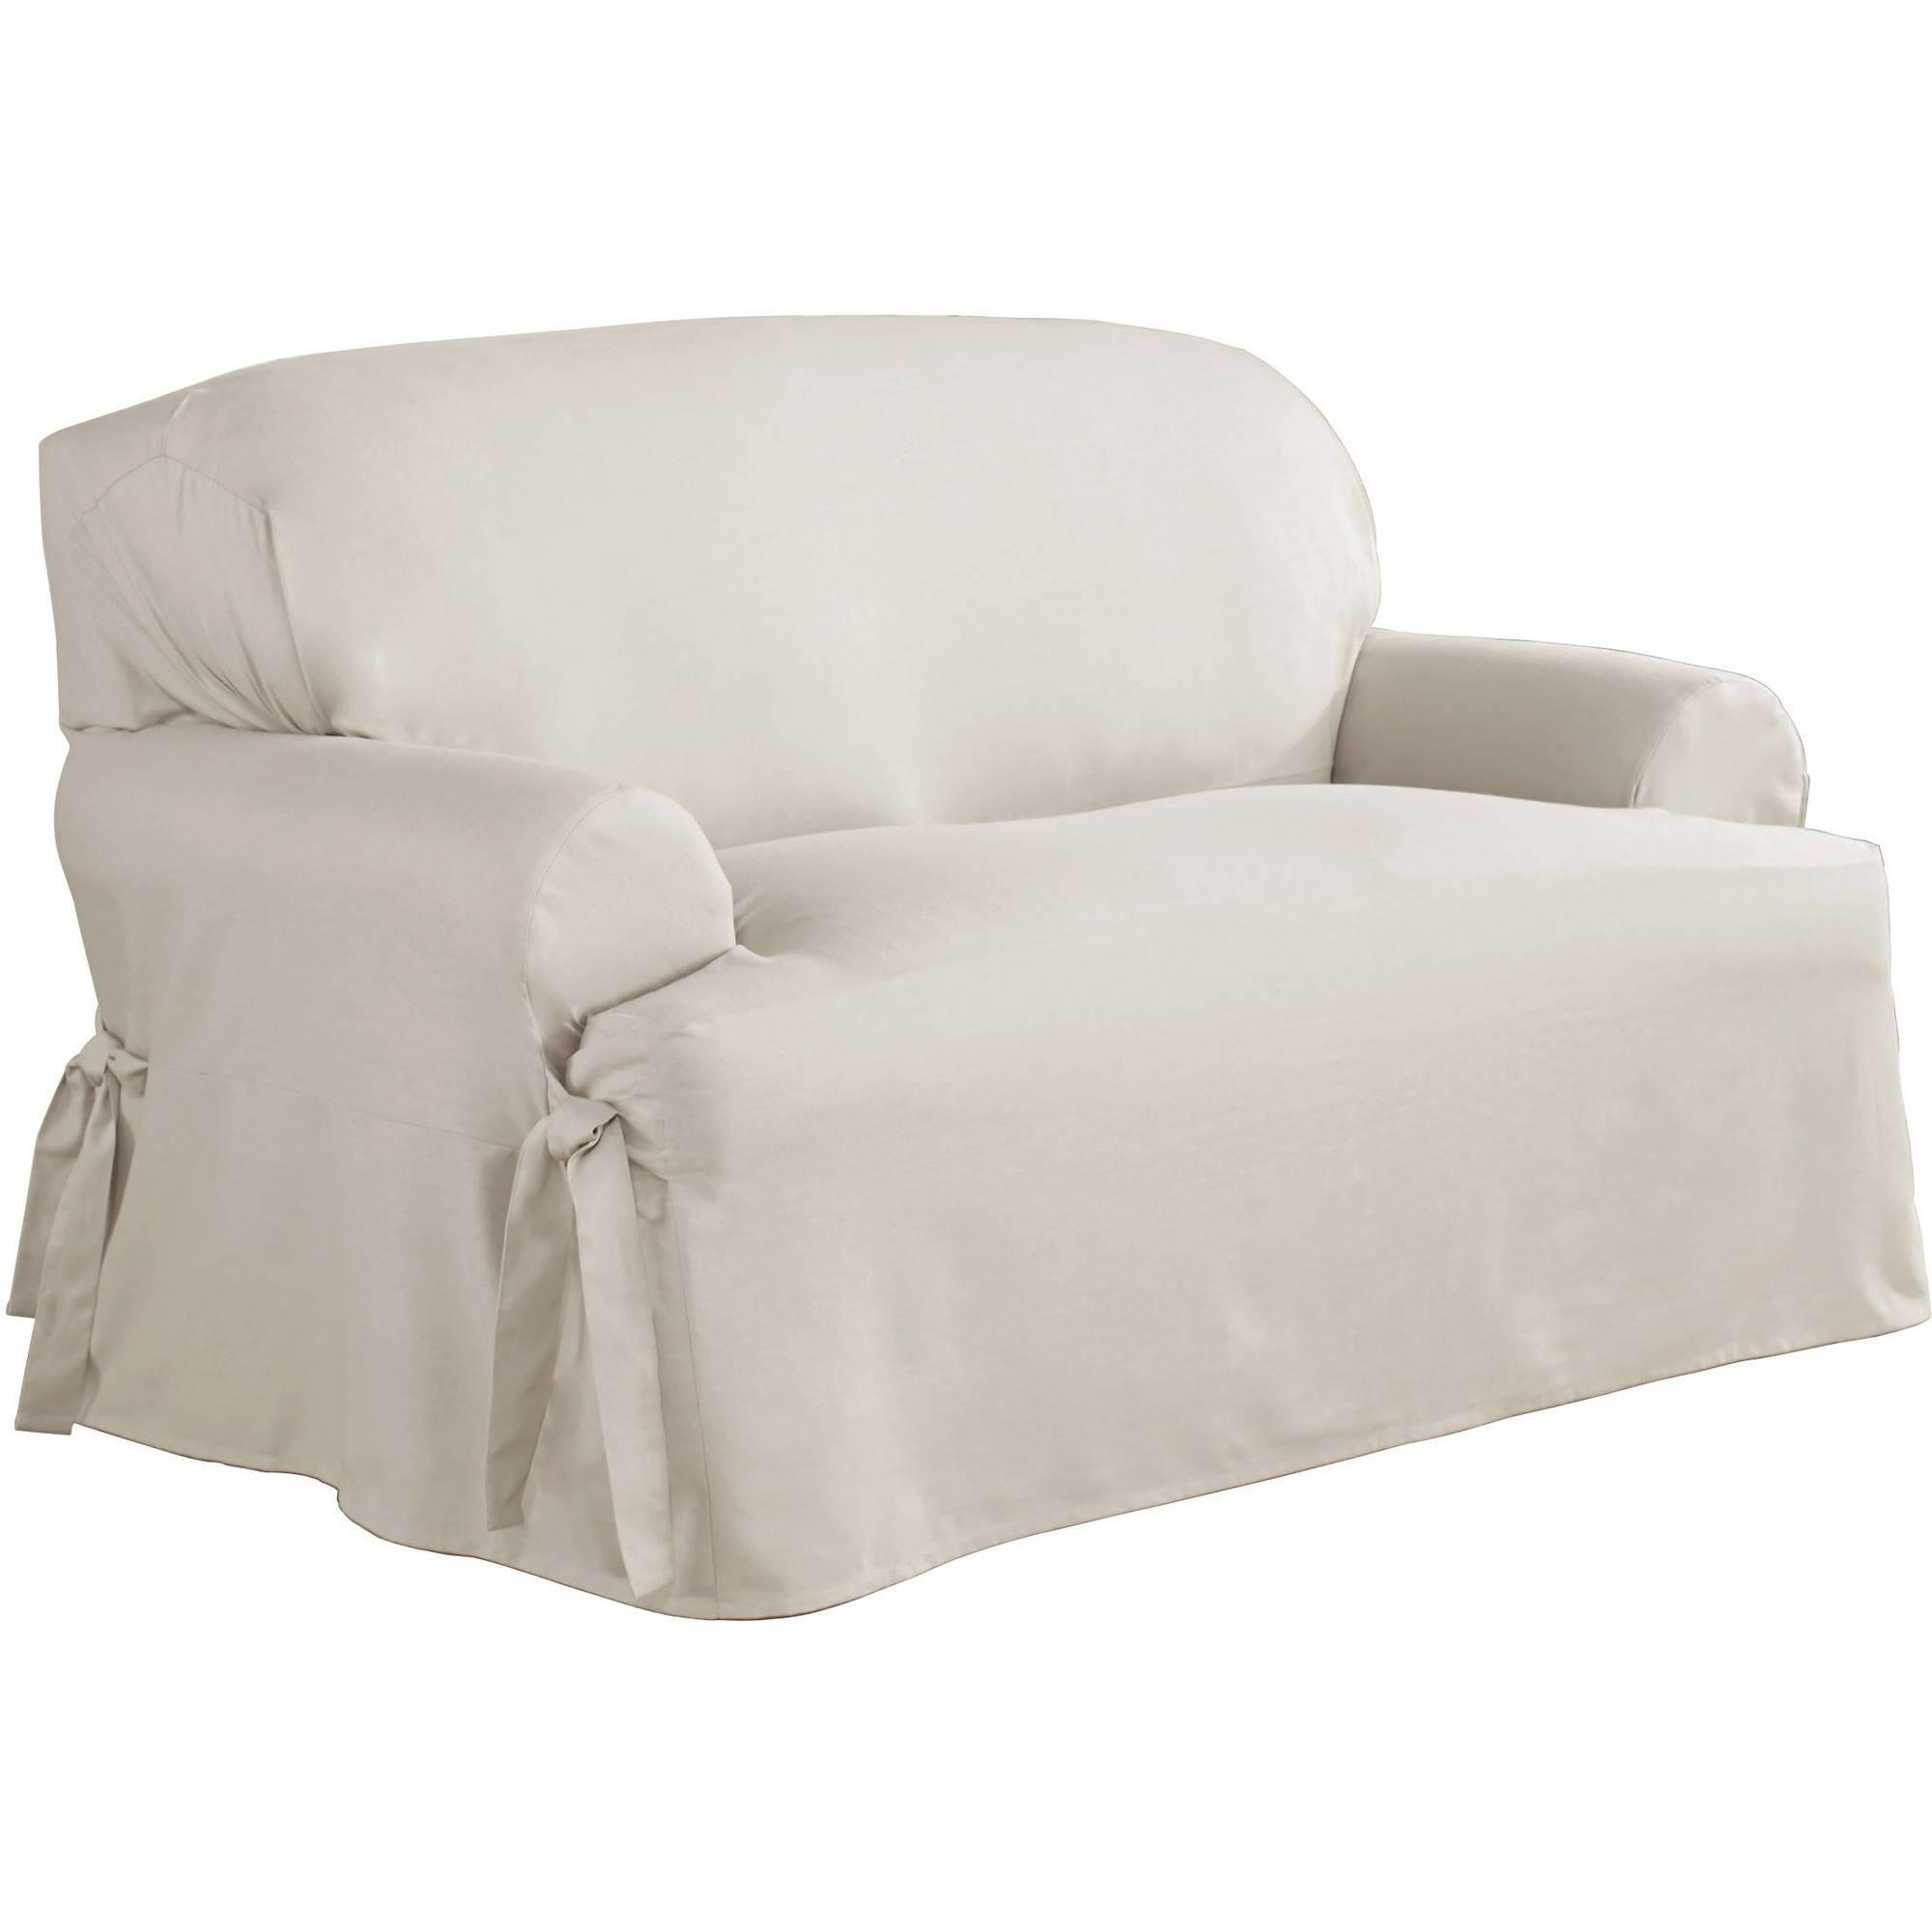 Serta Relaxed Fit Duck Furniture Slipcover, Loveseat 1 Piece T Throughout Loveseat Slipcovers 3 Pieces (View 11 of 20)